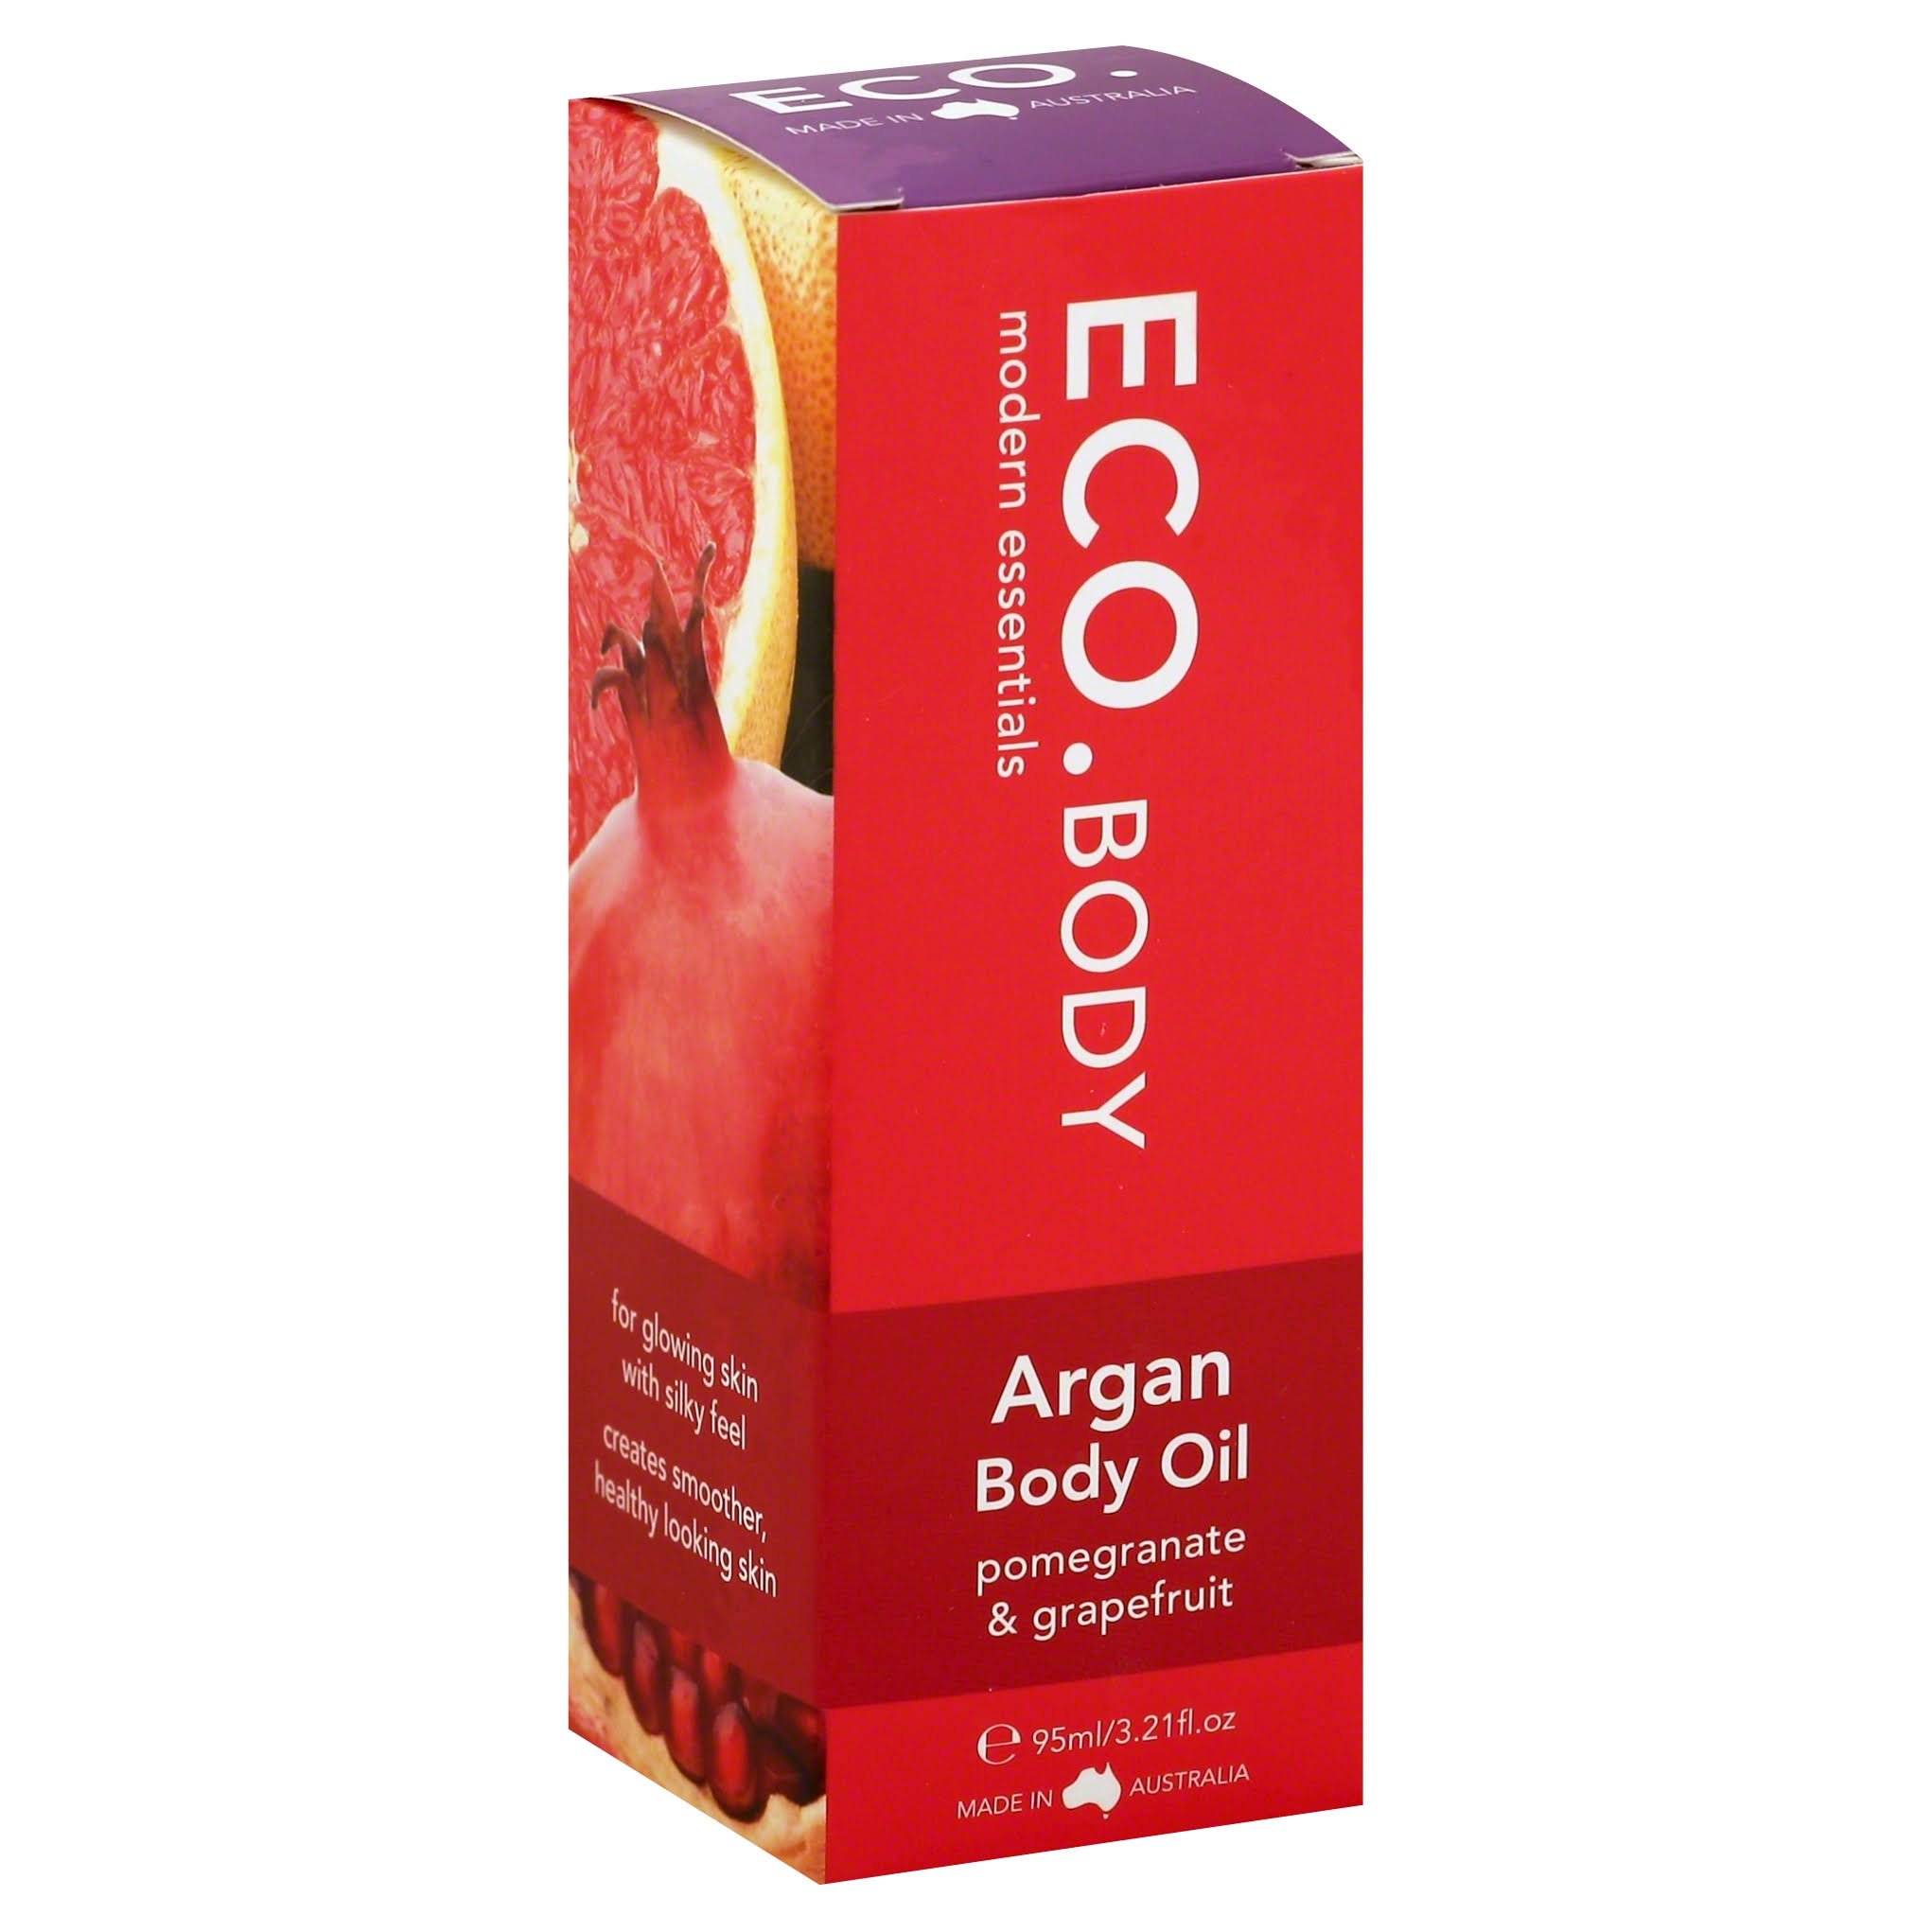 Eco Modern Essentials Argan Body Oil - 3.21oz